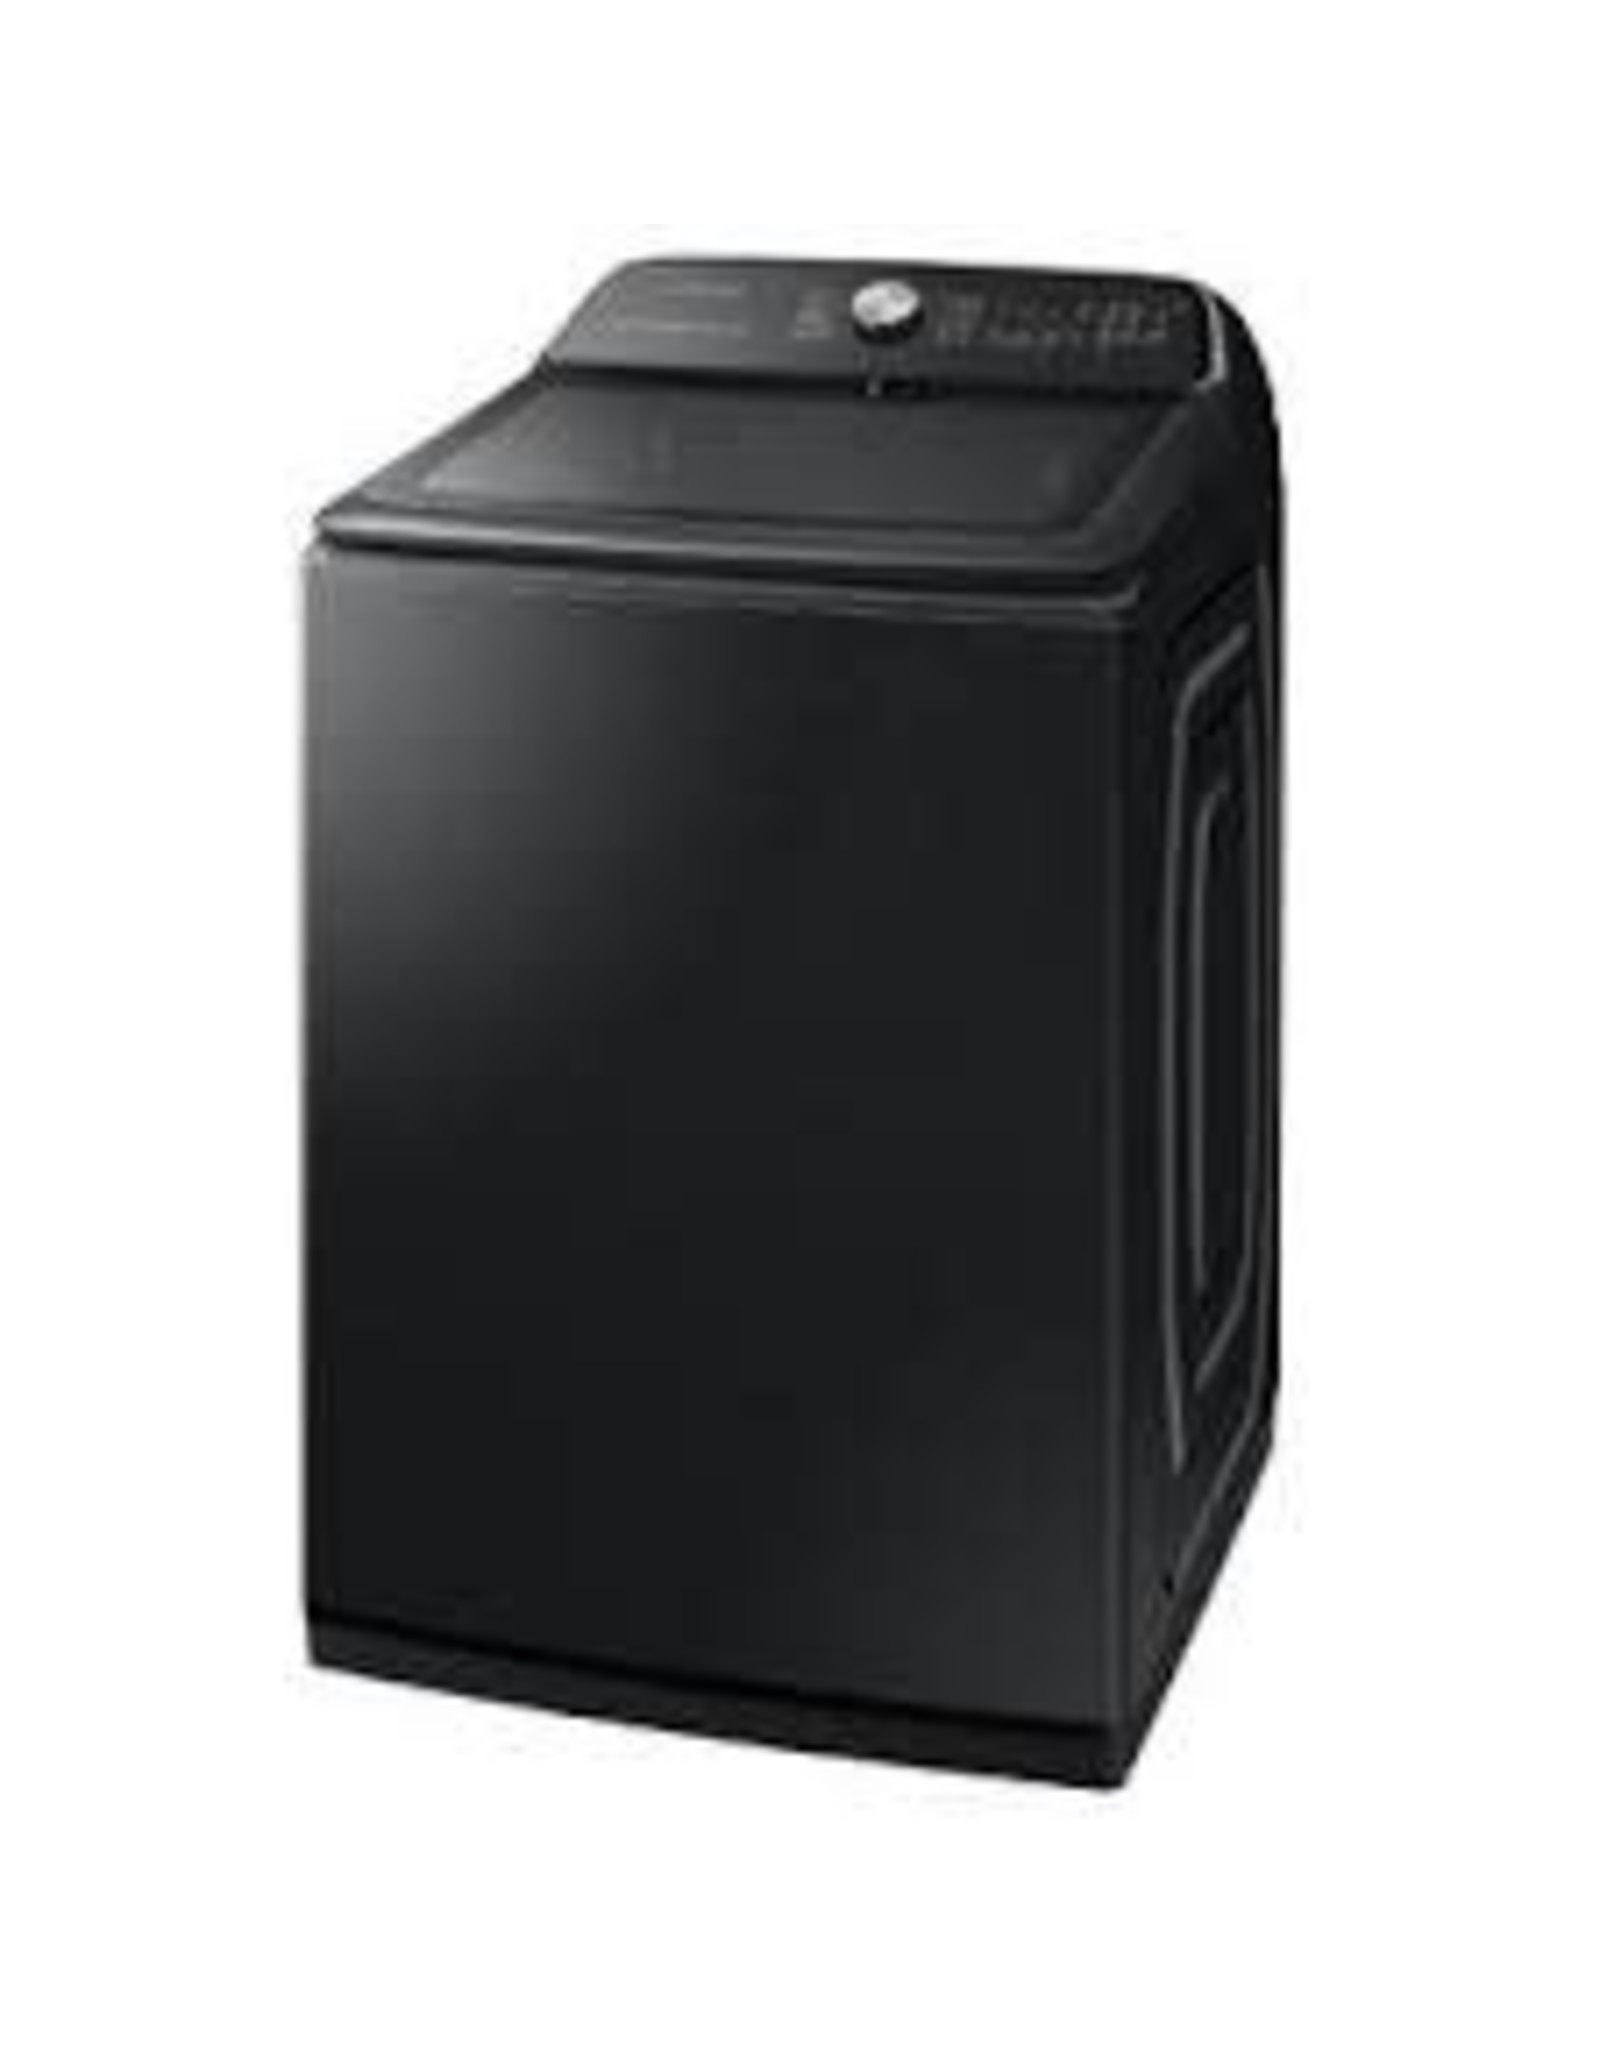 SAMSUNG Samsung 5.4 cu. ft. High-Efficiency Black Stainless Steel Top Load Washing Machine with Super Speed and Steam, ENERGY STAR